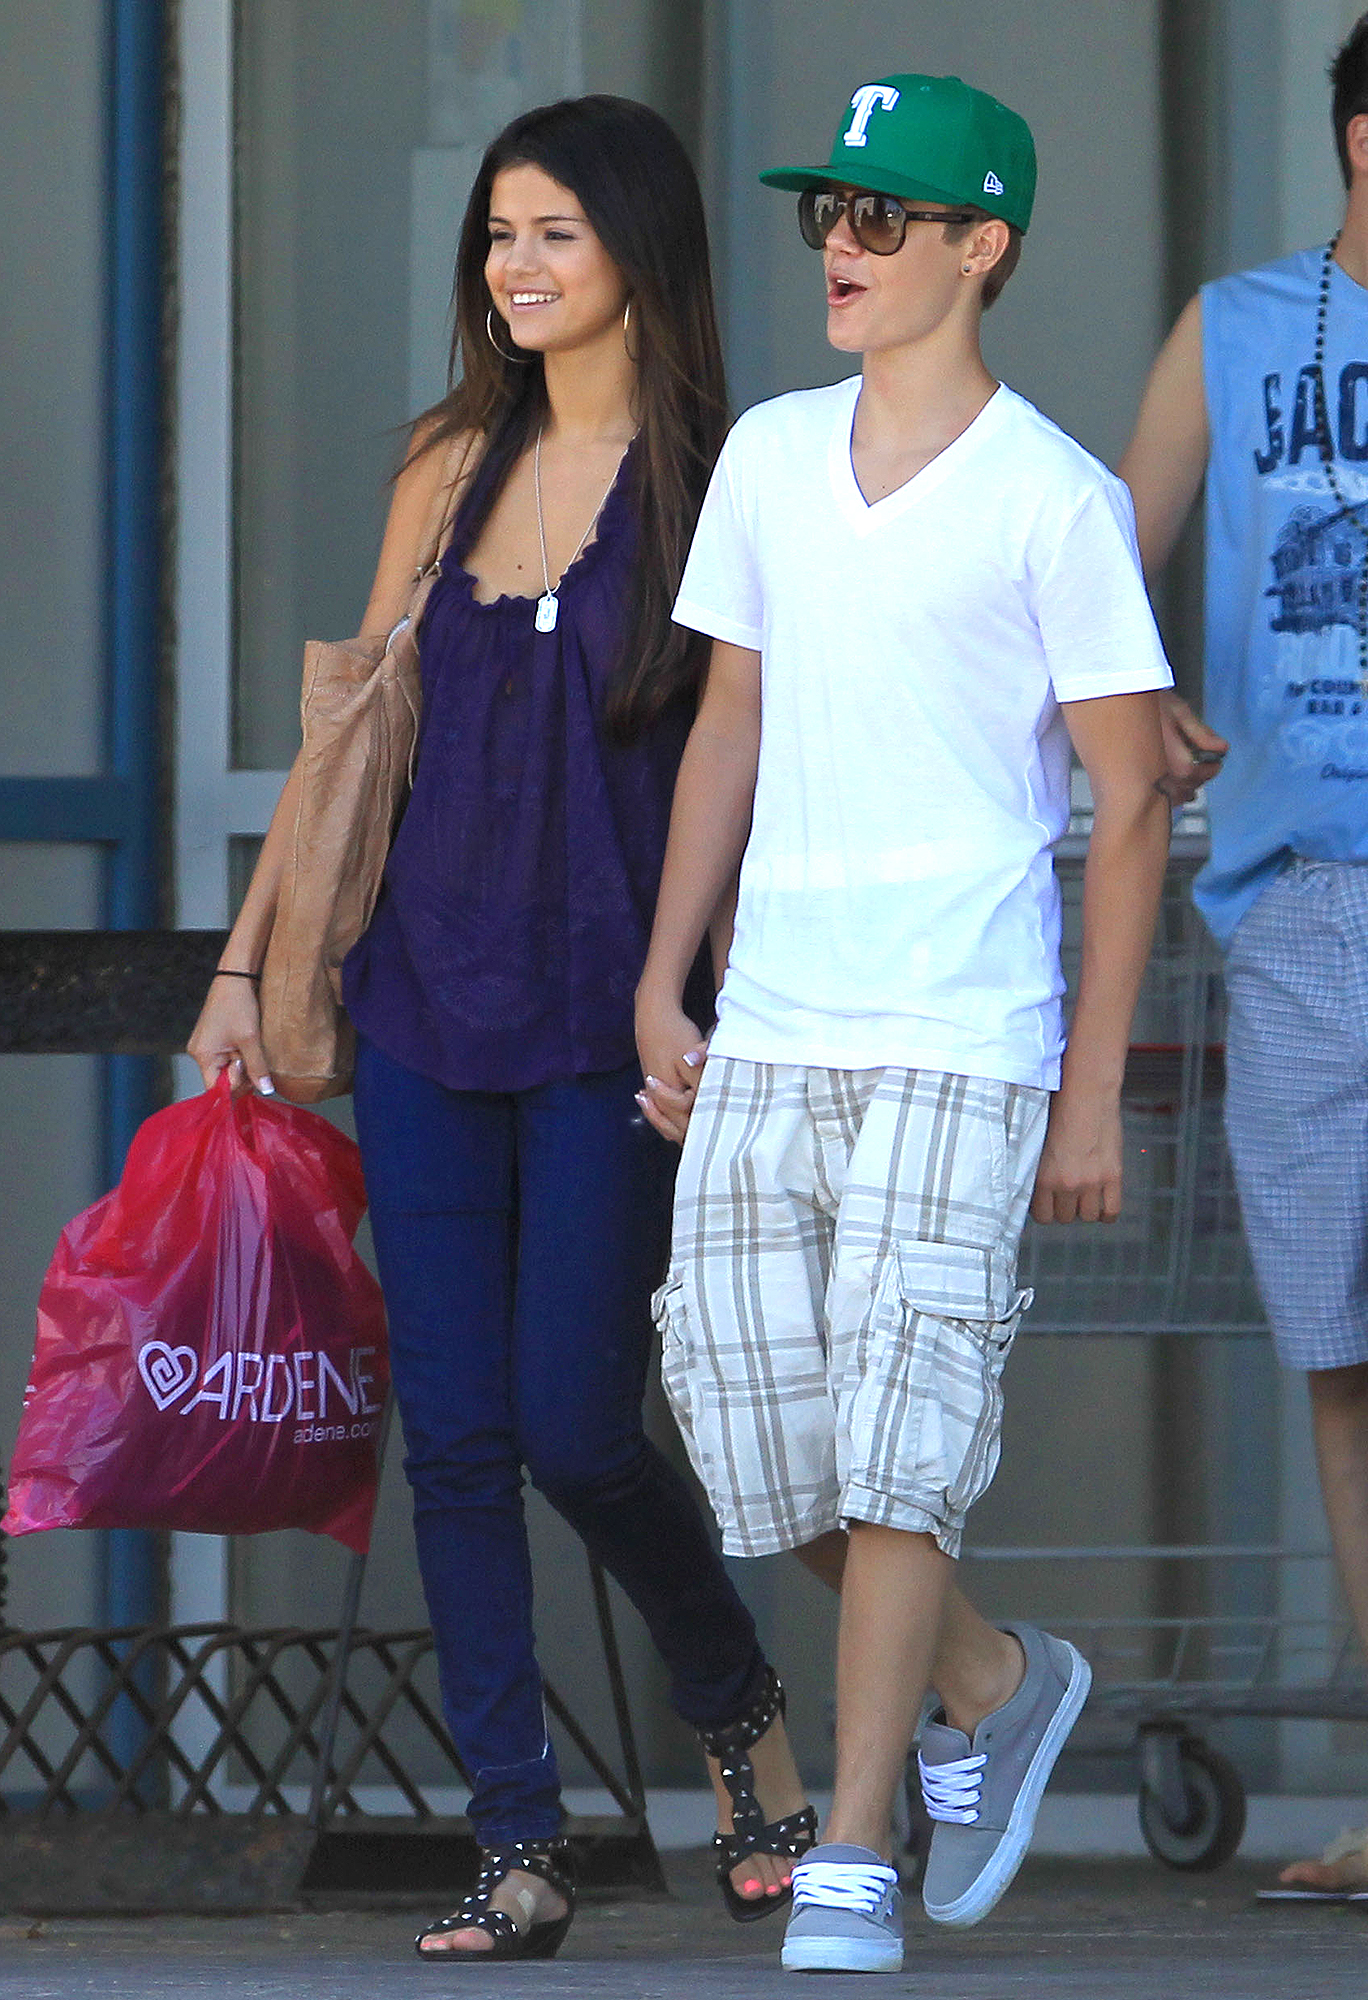 Justin Bieber and Selena Gomez leave a shopping mall hand in hand.